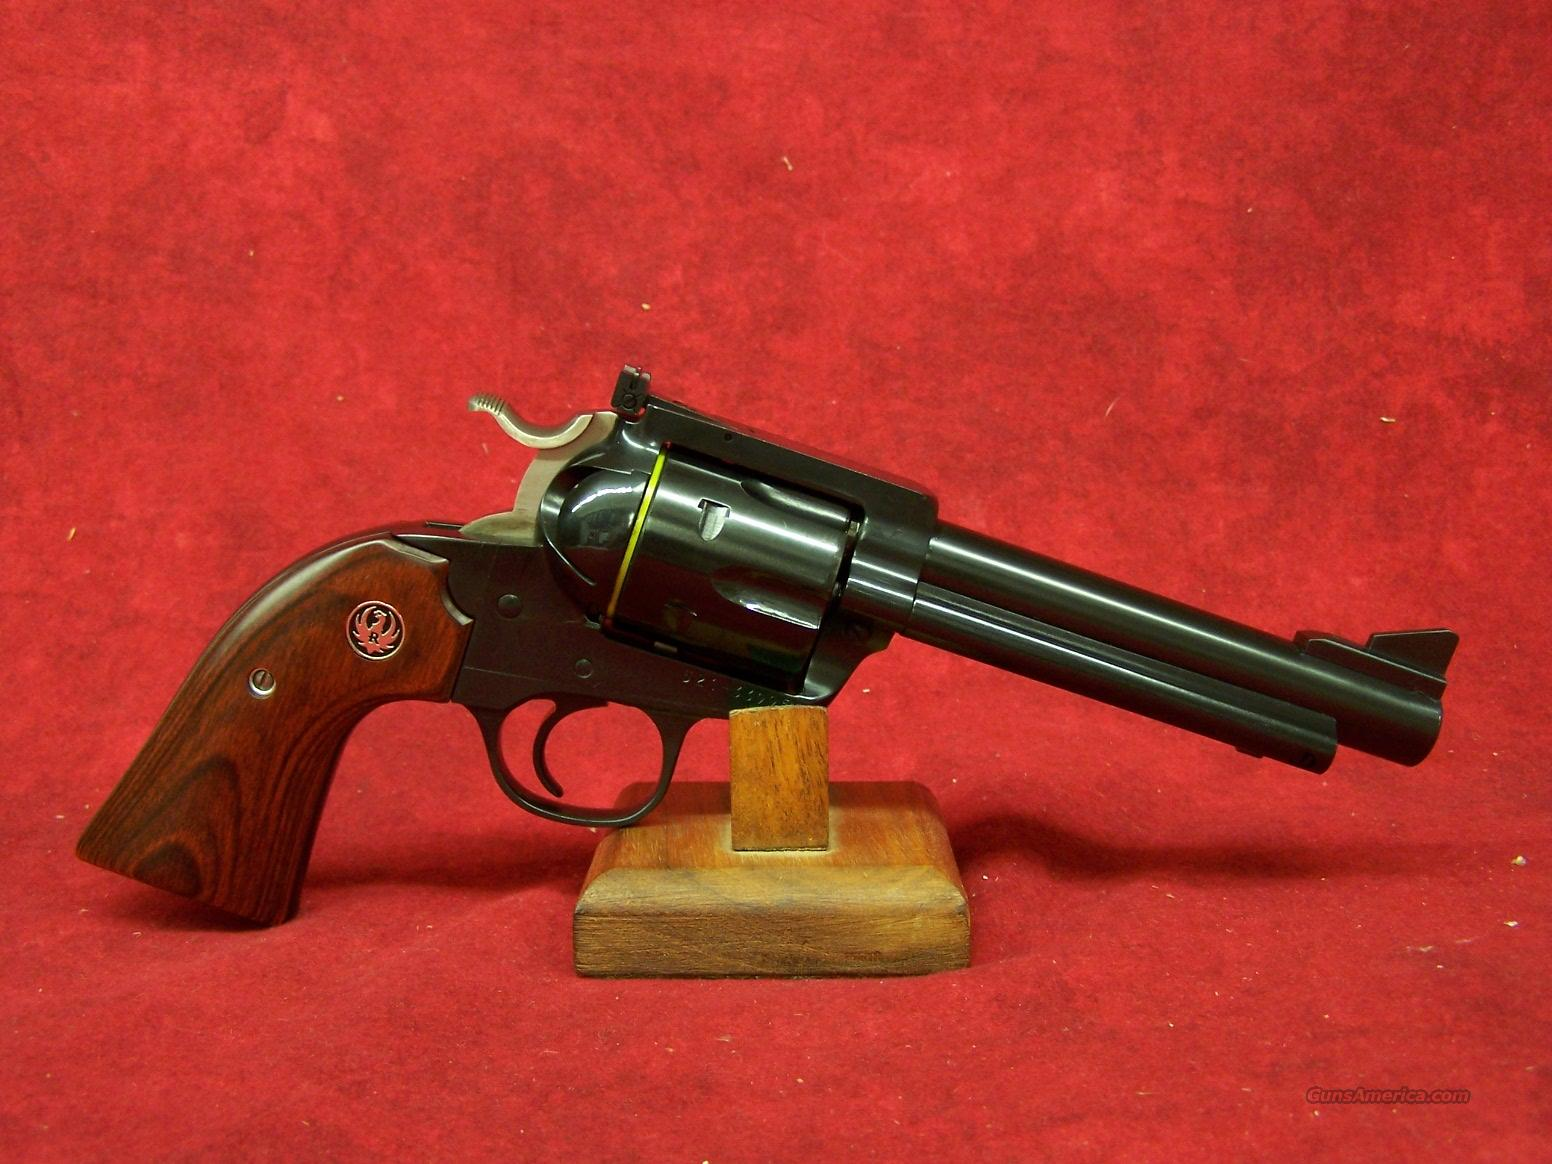 "Ruger Blackhawk Flat Top Bisley .44 Spl 5 1/2"" Blue Barrel (05235)  Guns > Pistols > Ruger Single Action Revolvers > Blackhawk Type"